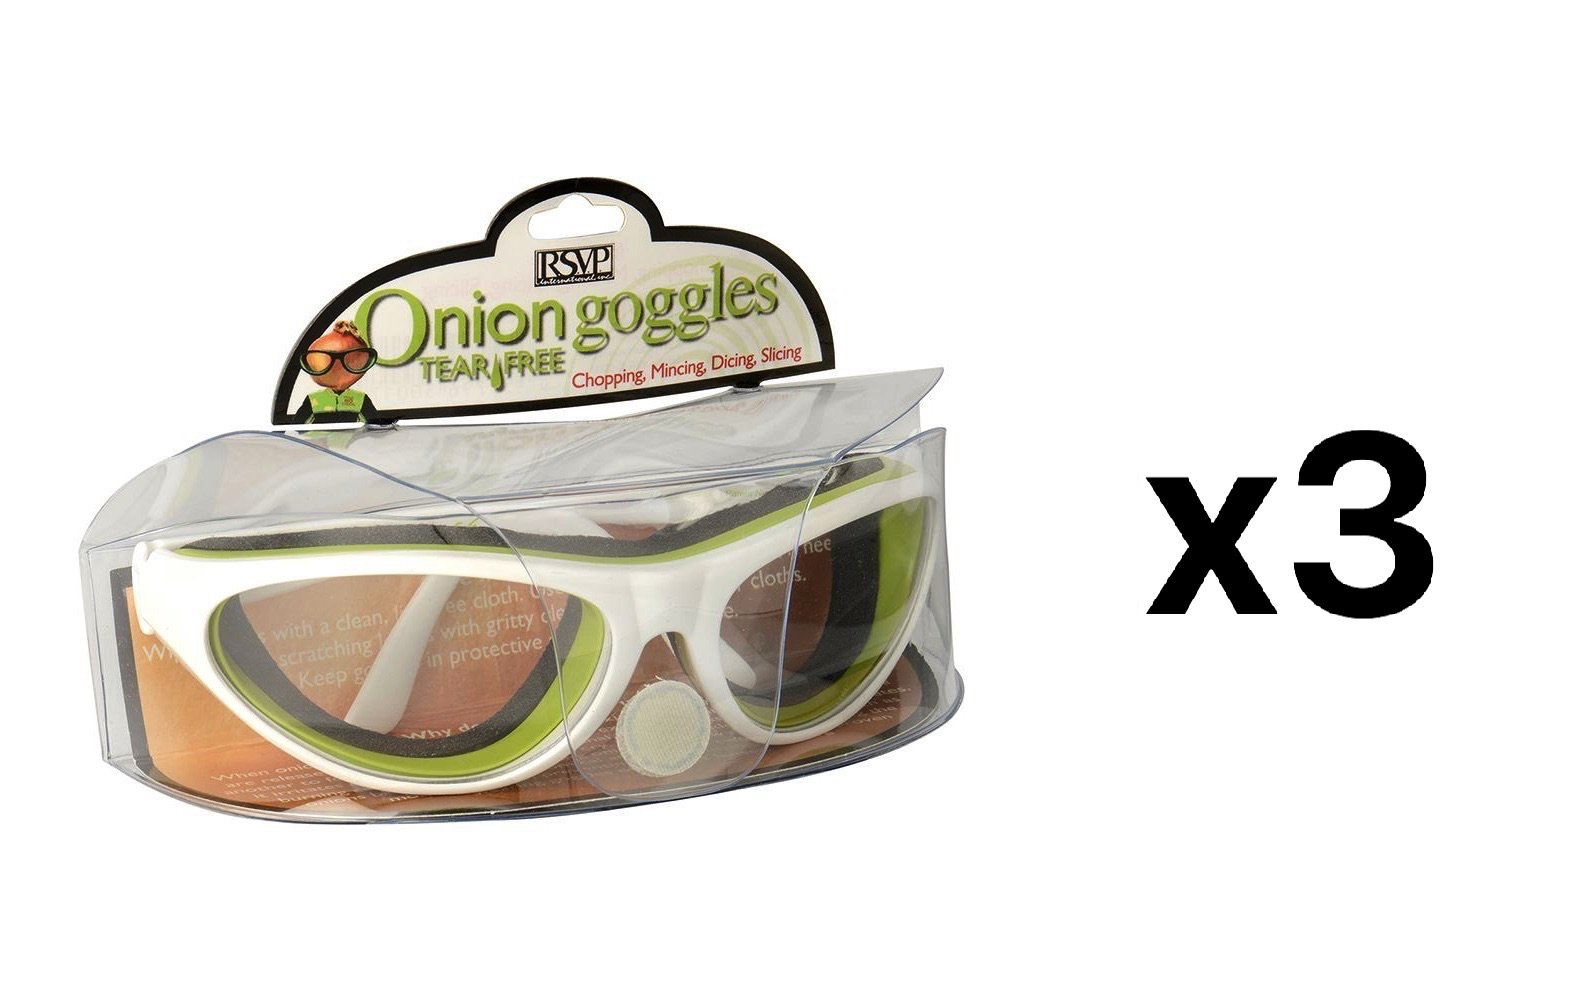 RSVP Onion Goggles w/Case Tear Free Anti Fog Cutting Chopping WHITE (3-Pack)